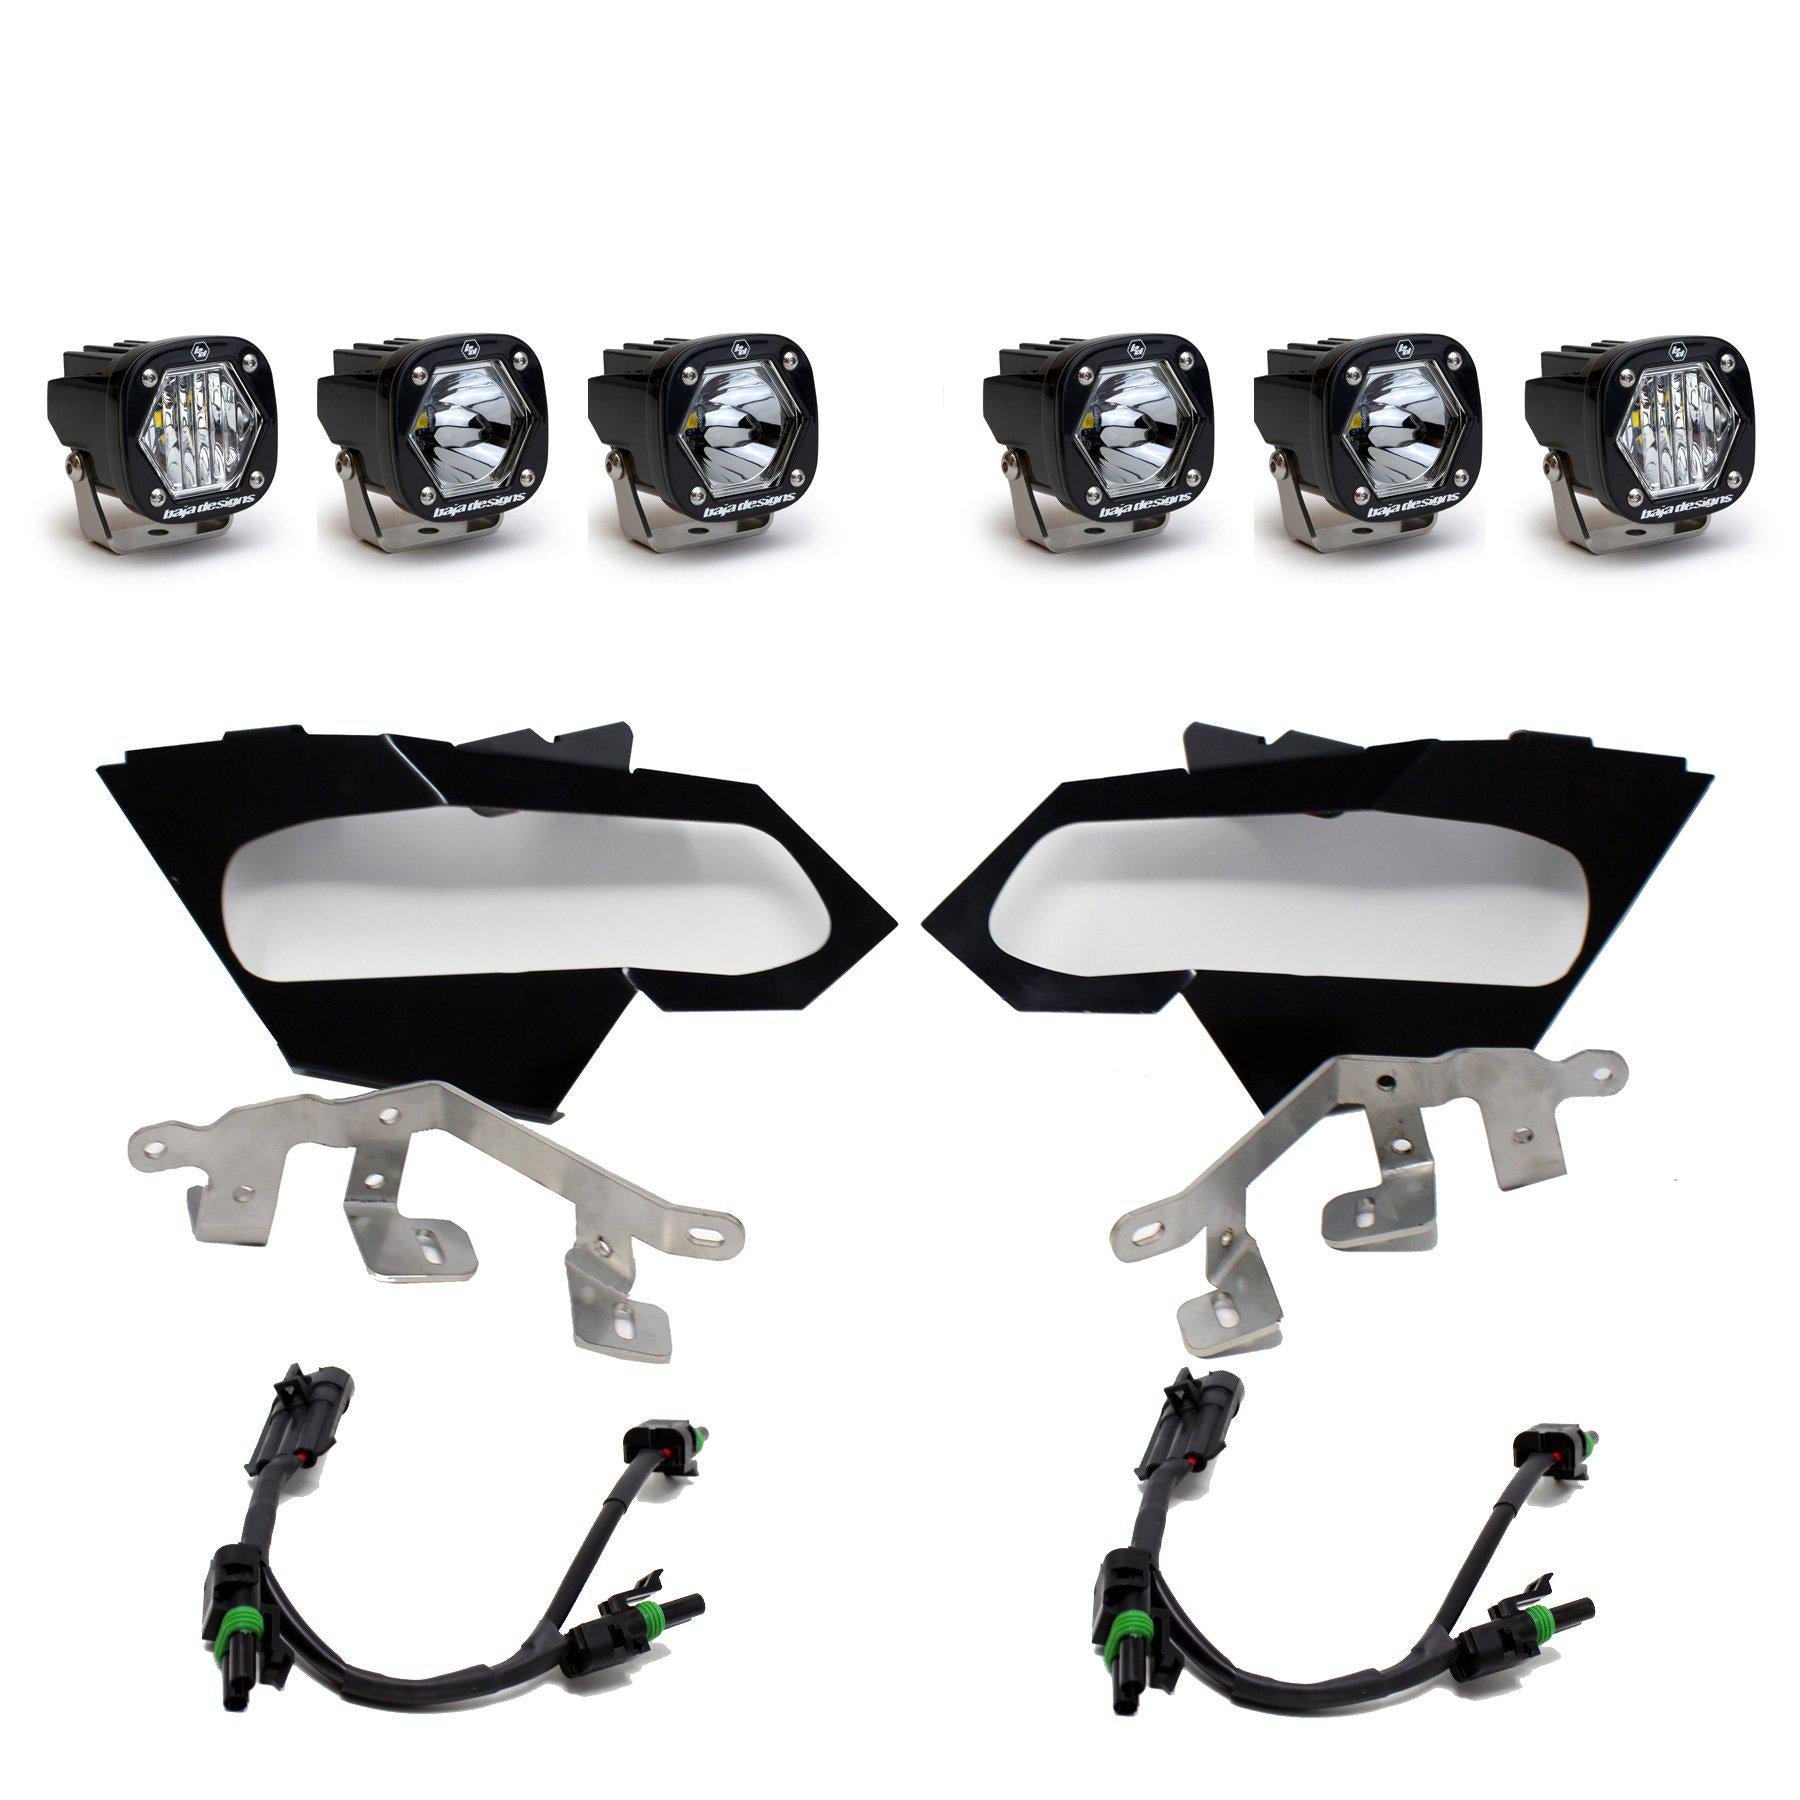 Baja Designs S1 Laser and Wide Cornering Headlight Kit-Headlight Kit-Baja Designs-Black Market UTV